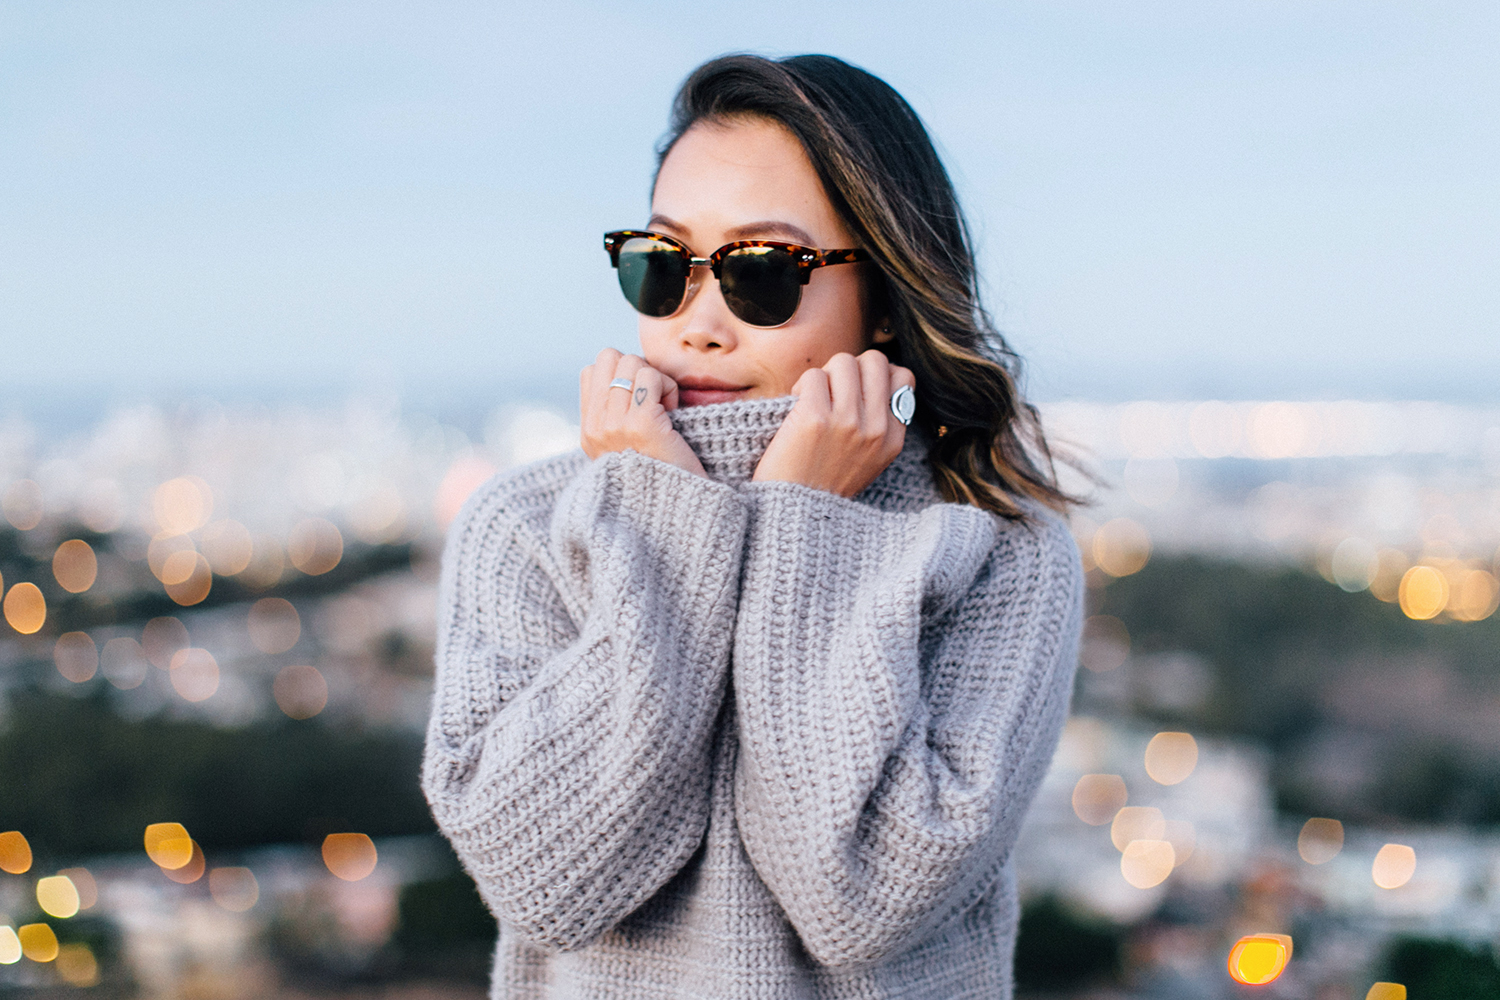 12margaretoleary-fall-knit-sweater-sf-sanfrancisco-landscape-cityscape-travel-style-fashion